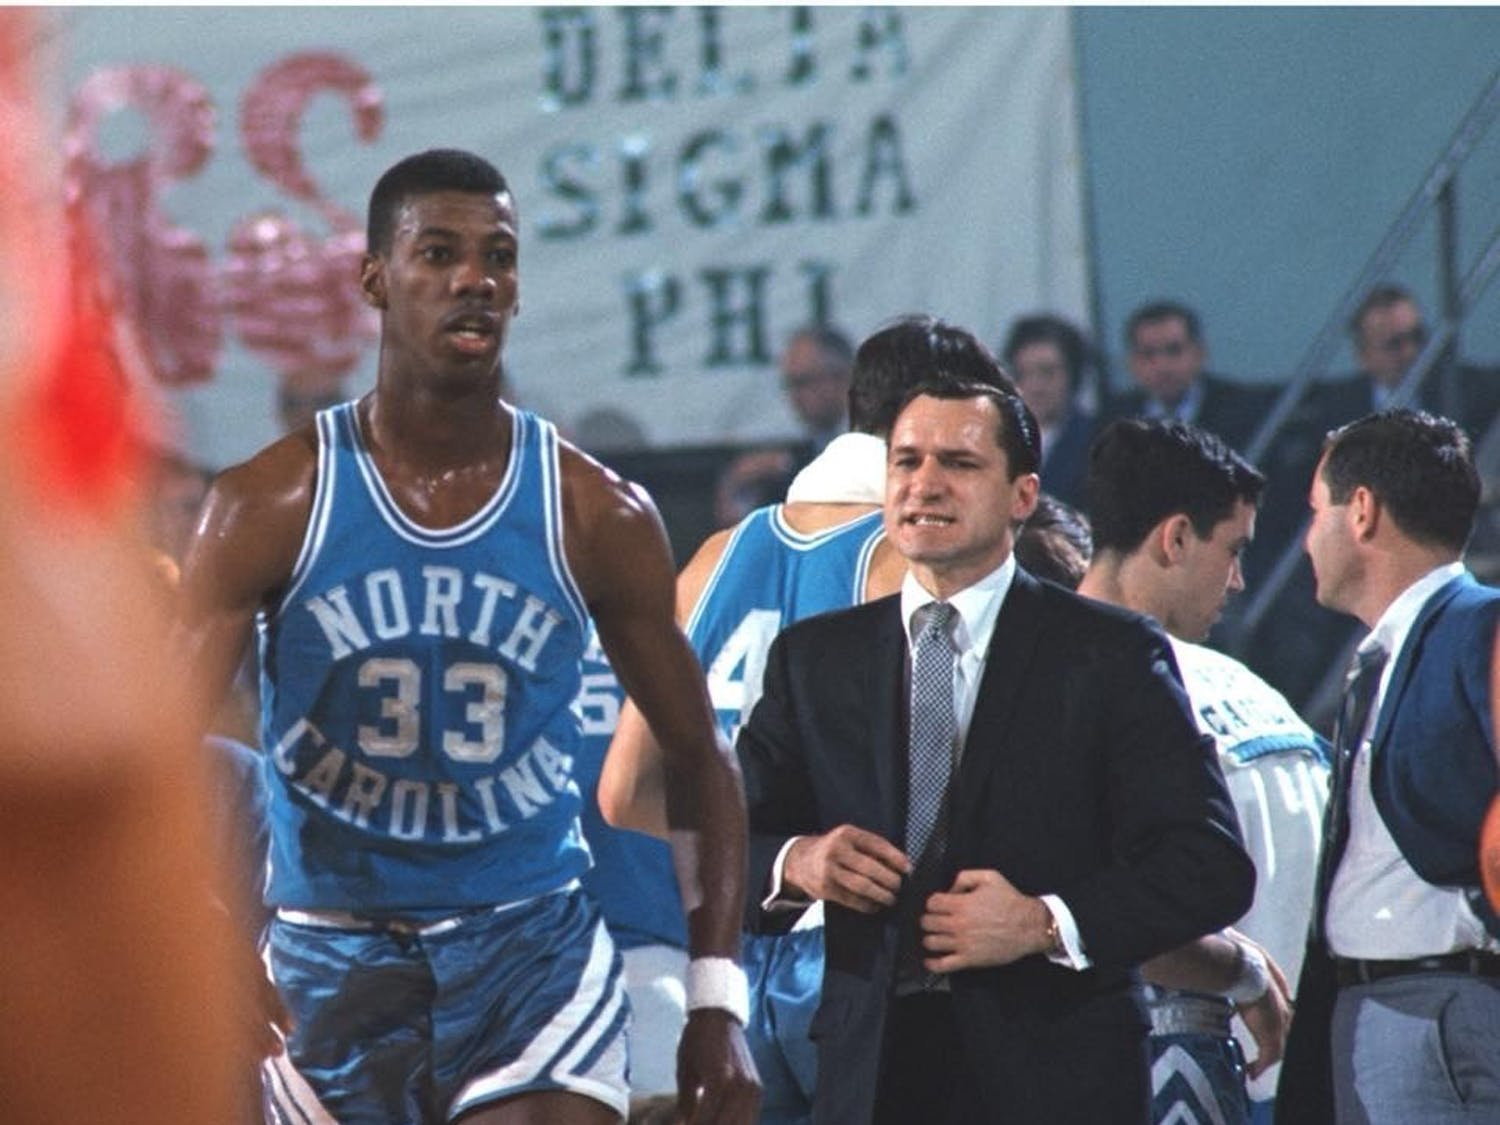 Former UNC guard Charlie Scott stands next to Dean Smith. Photo courtesy of UNC Department of Athletics.